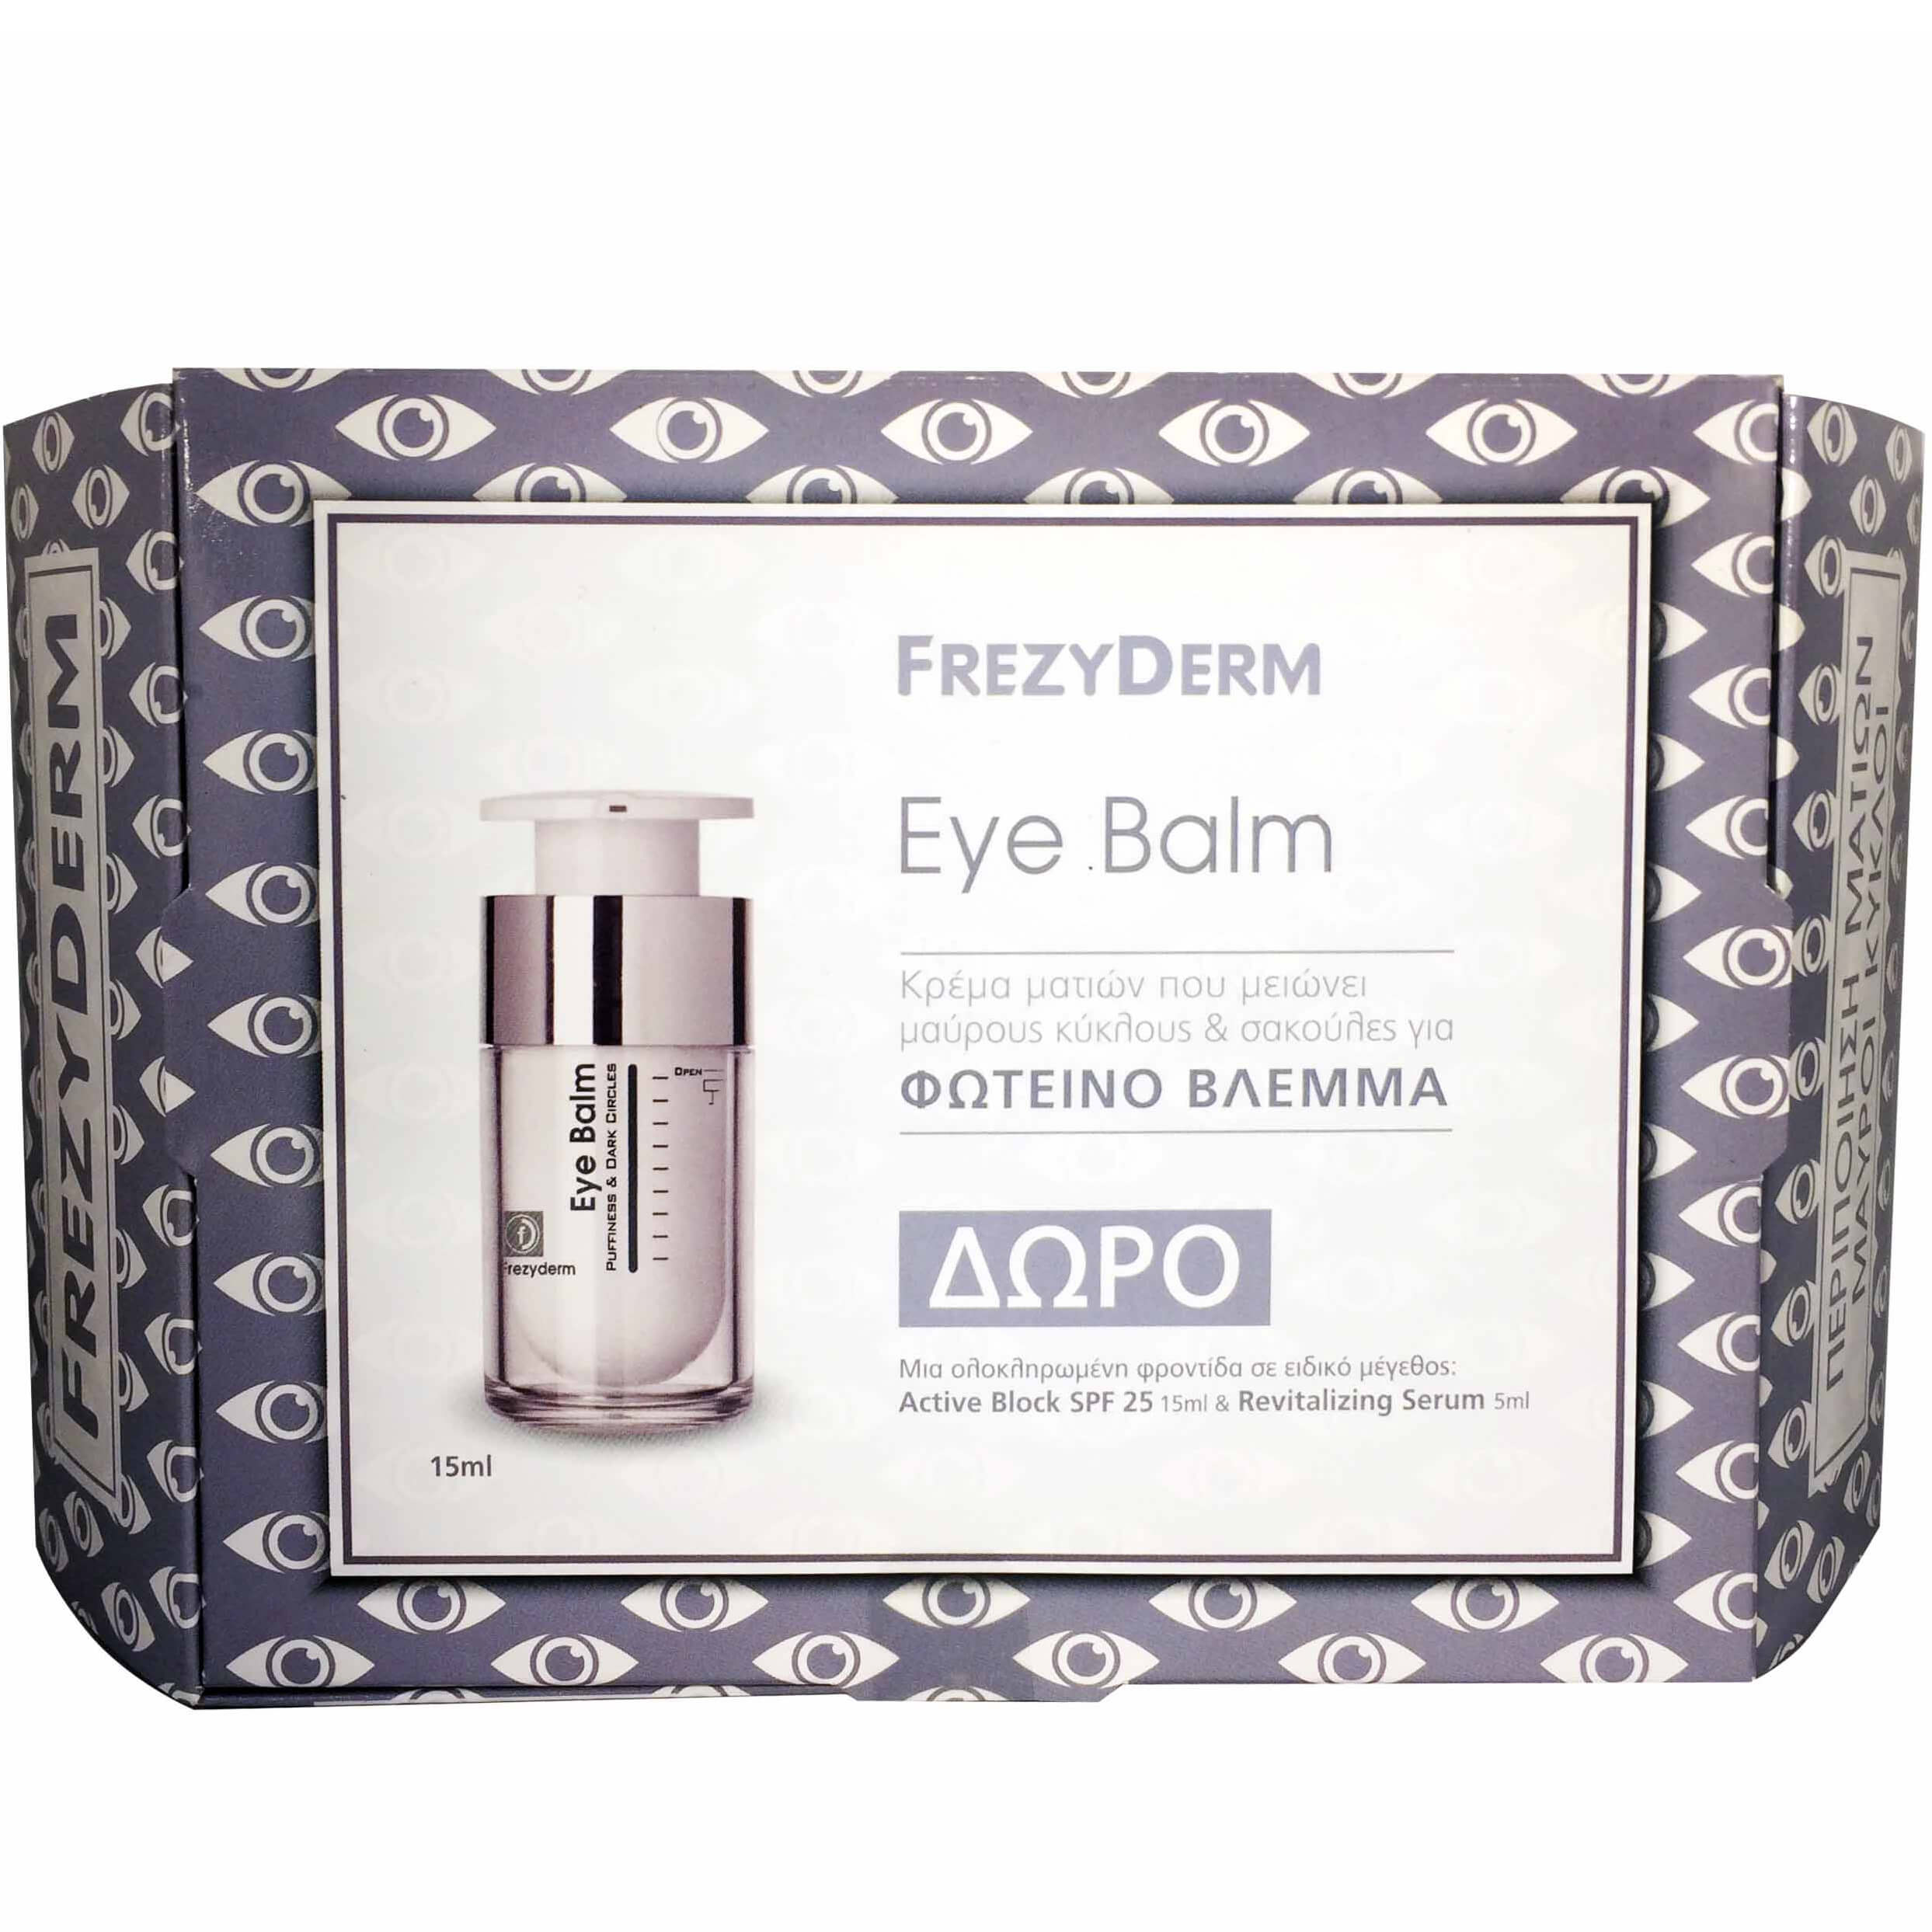 Frezyderm Πακέτο Προσφοράς Eye Balm 15ml +Δώρο Active Block Spf25 15ml + Revitalizing Serum 5ml